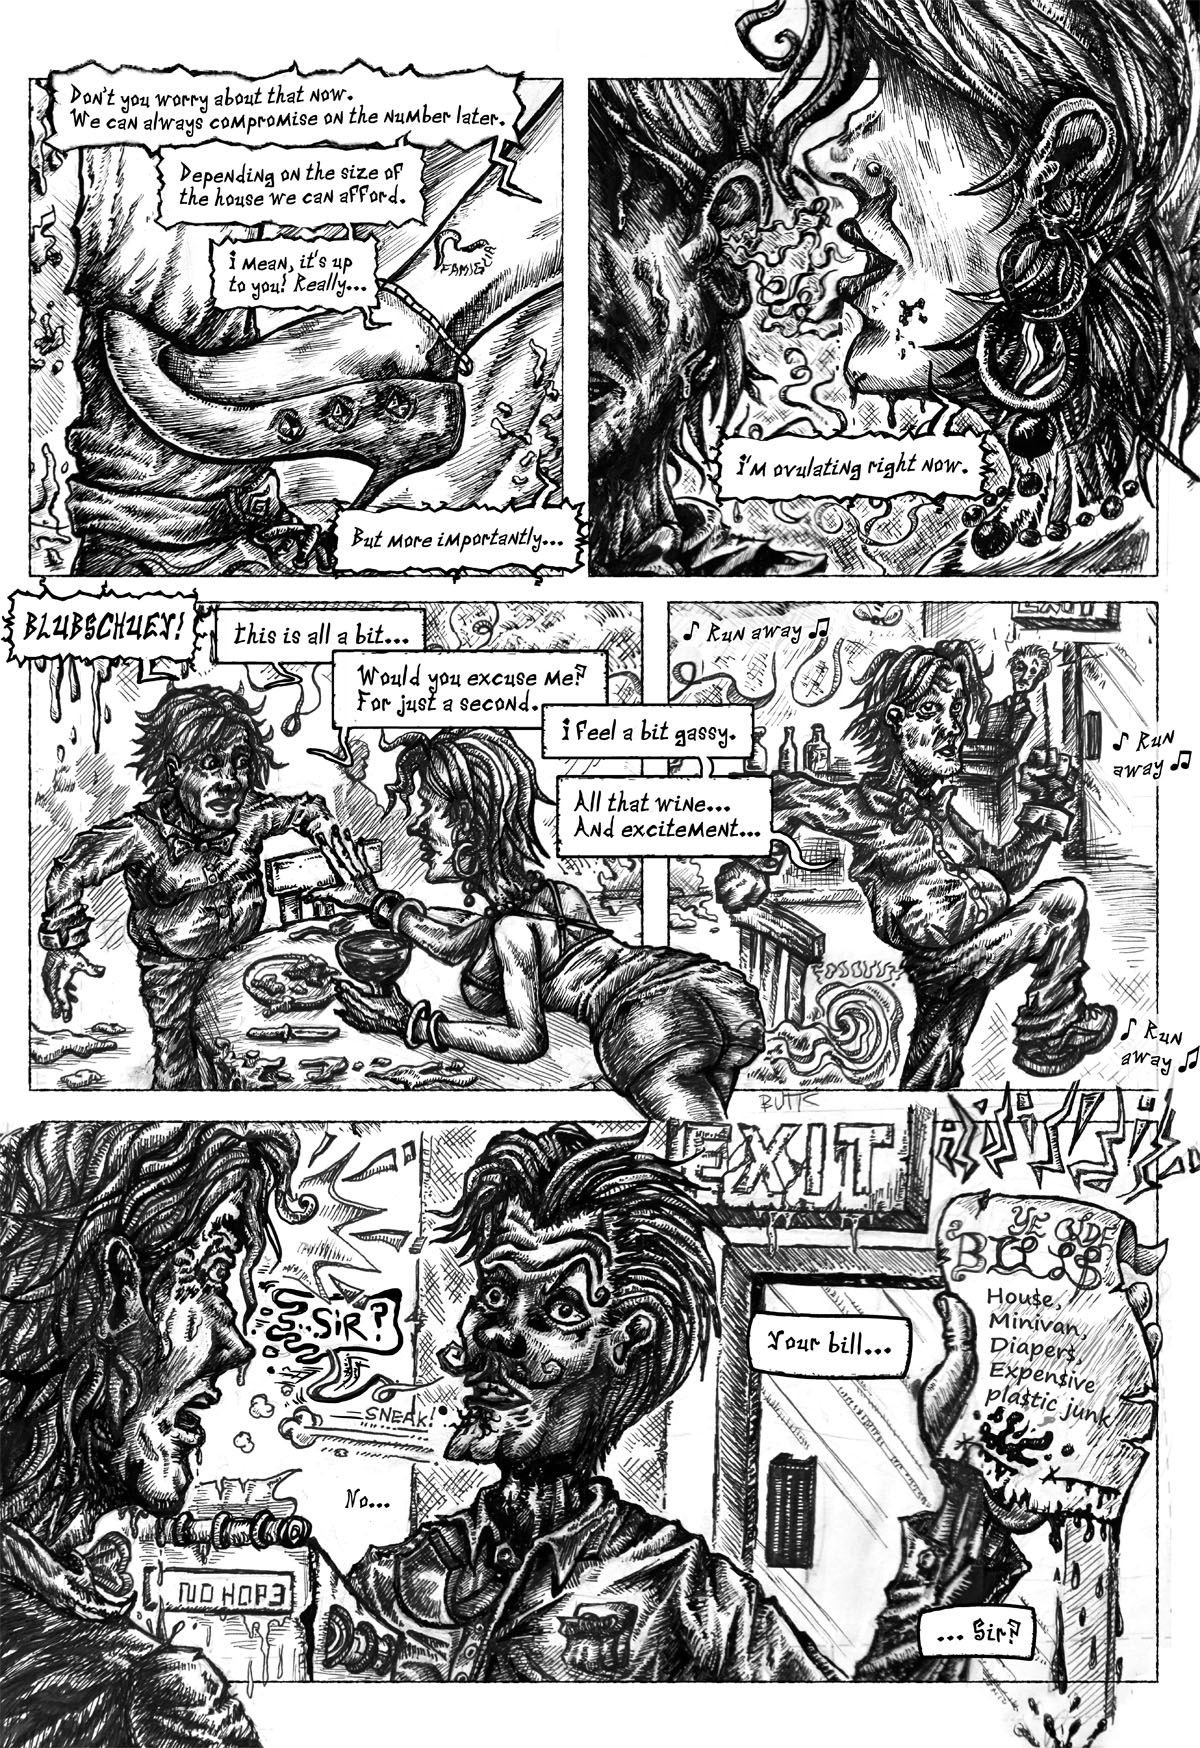 hotdate_page3_lowres